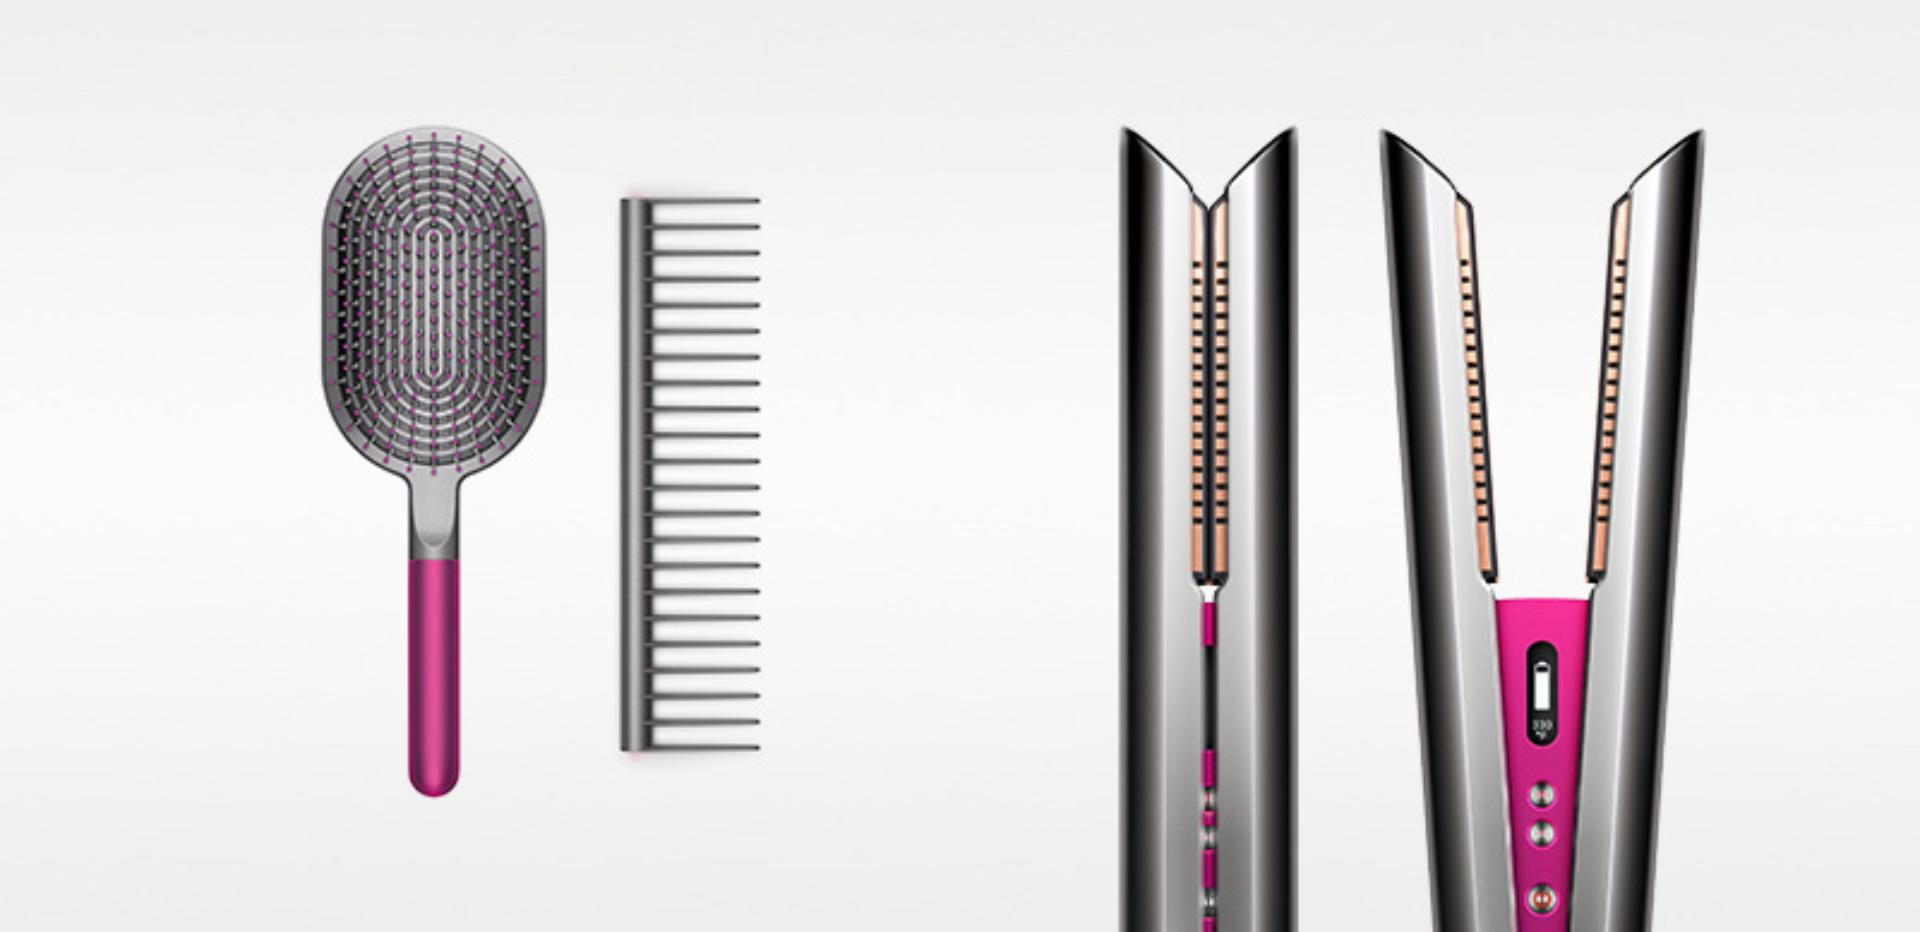 Dyson Corrale™ straightener with Dyson-designed styling set